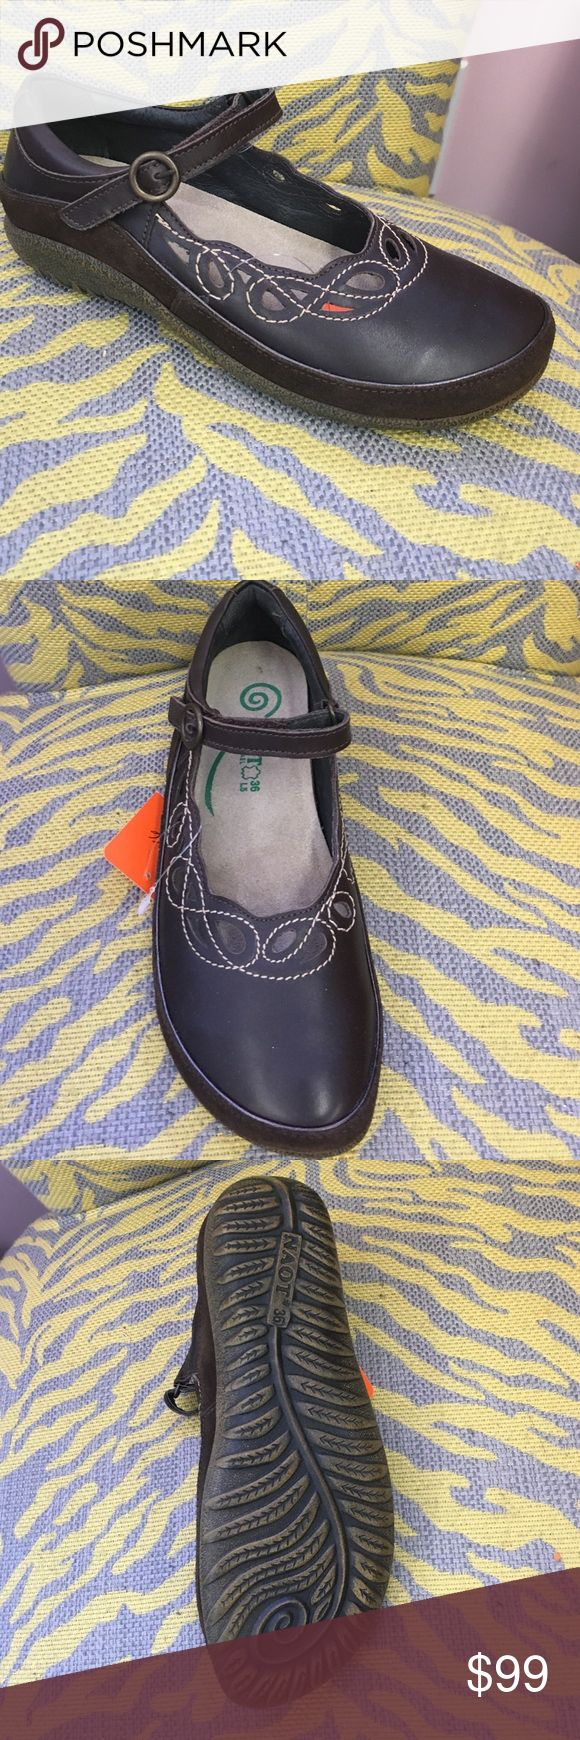 Naot shoes Brown new in box size 36 Naot shoes Naot Shoes